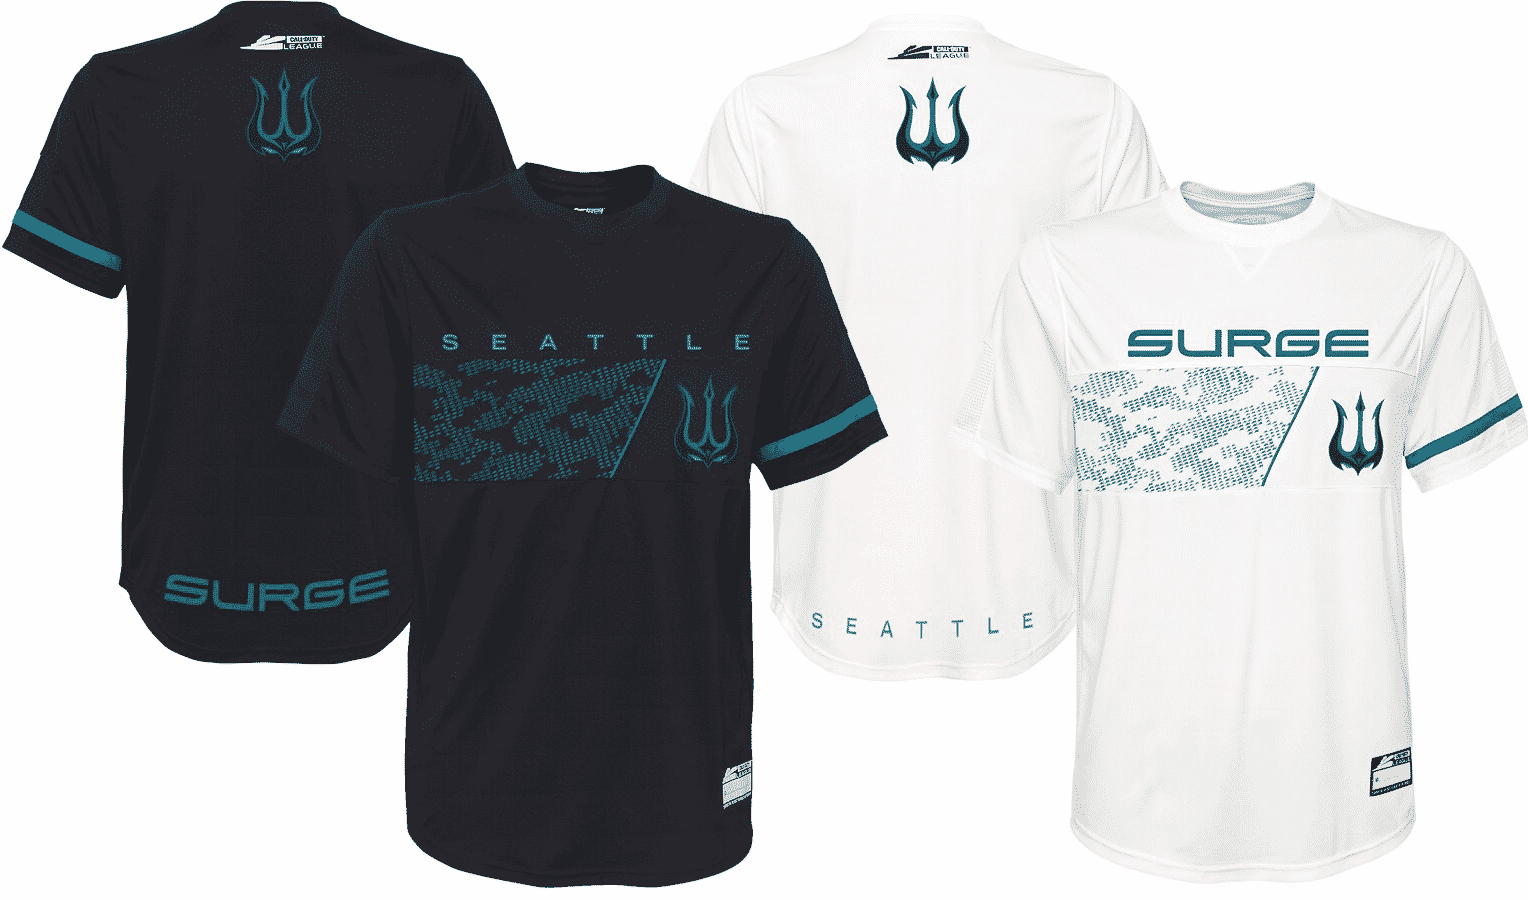 Seattle Surge Jersey Call of Duty League 2020 Esports